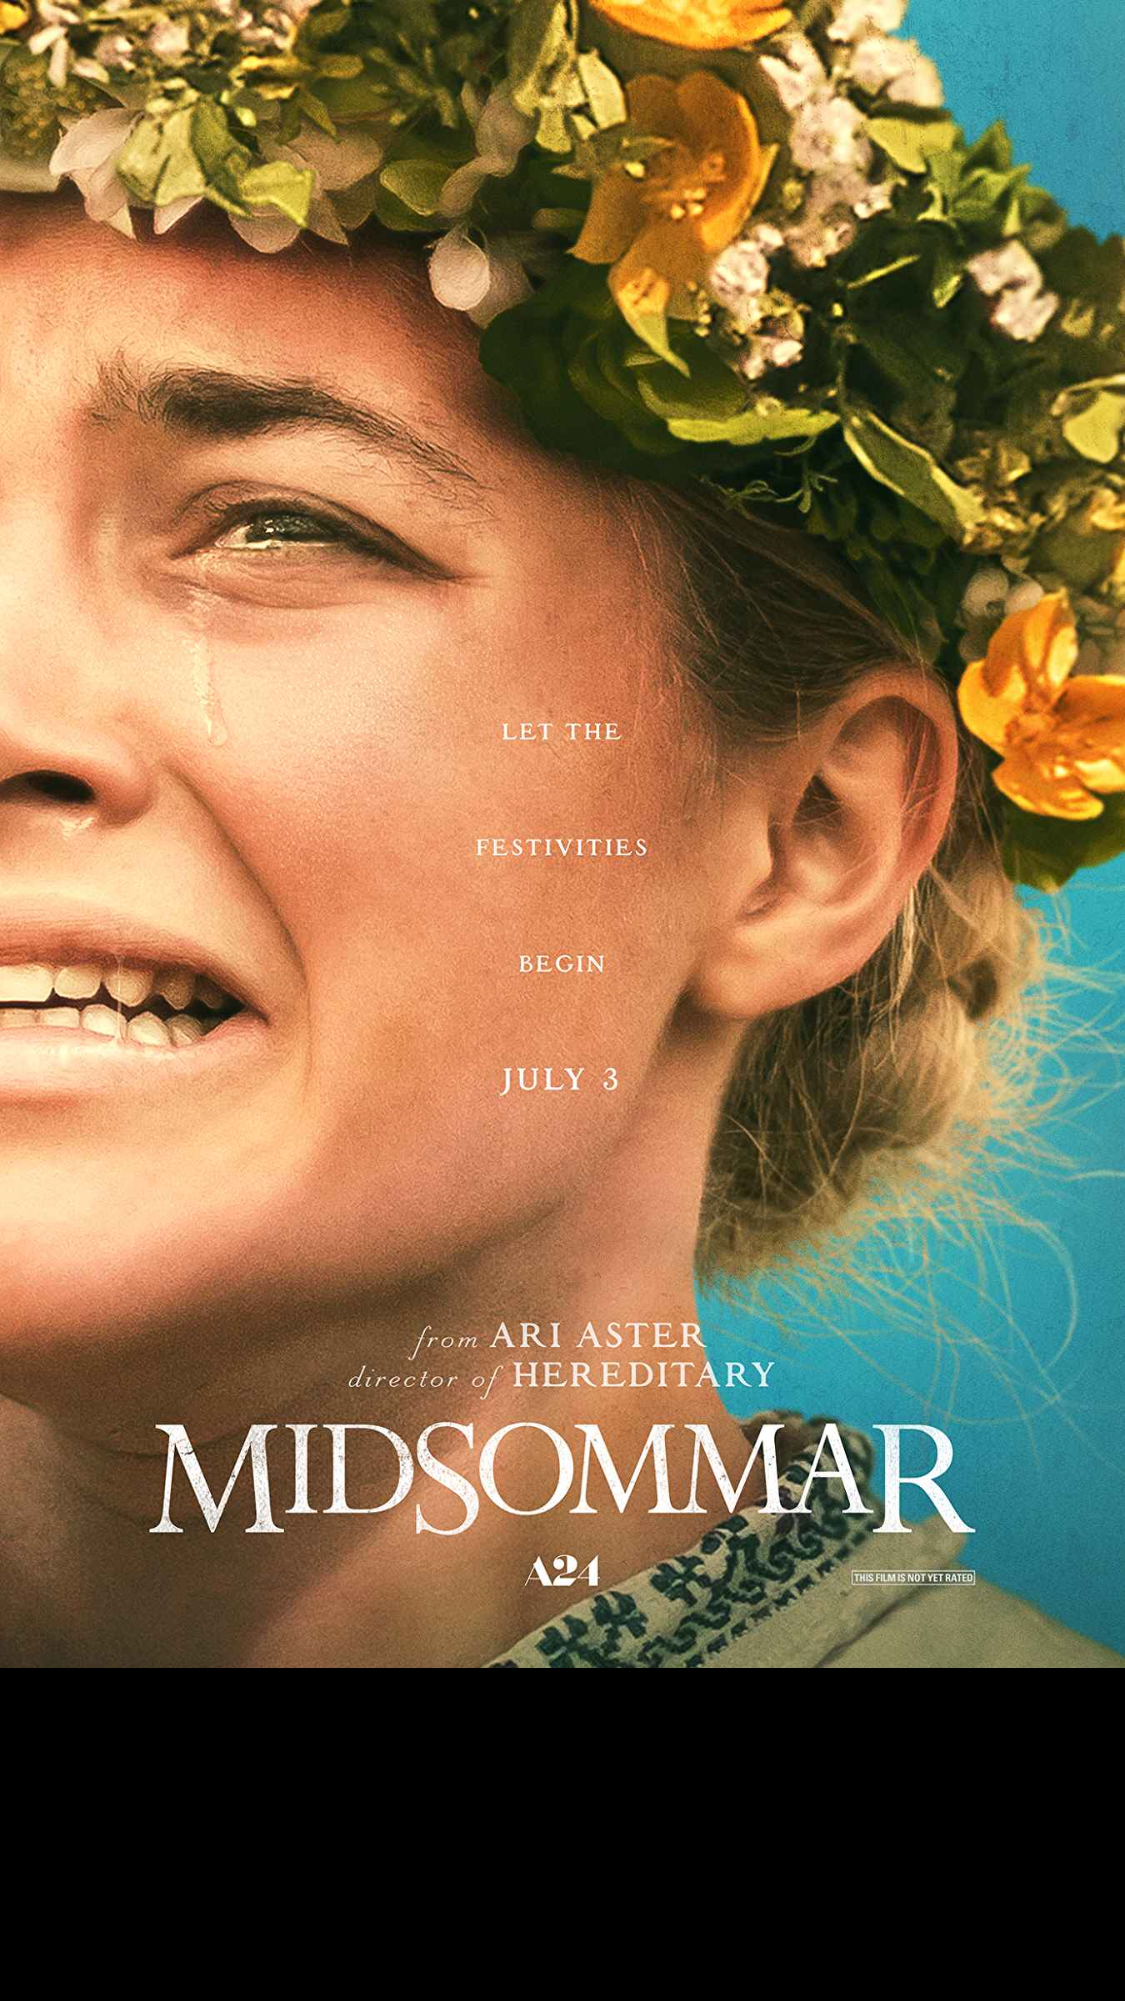 Midsommar in 2020 | Full movies online free. Free movies online. Full movies